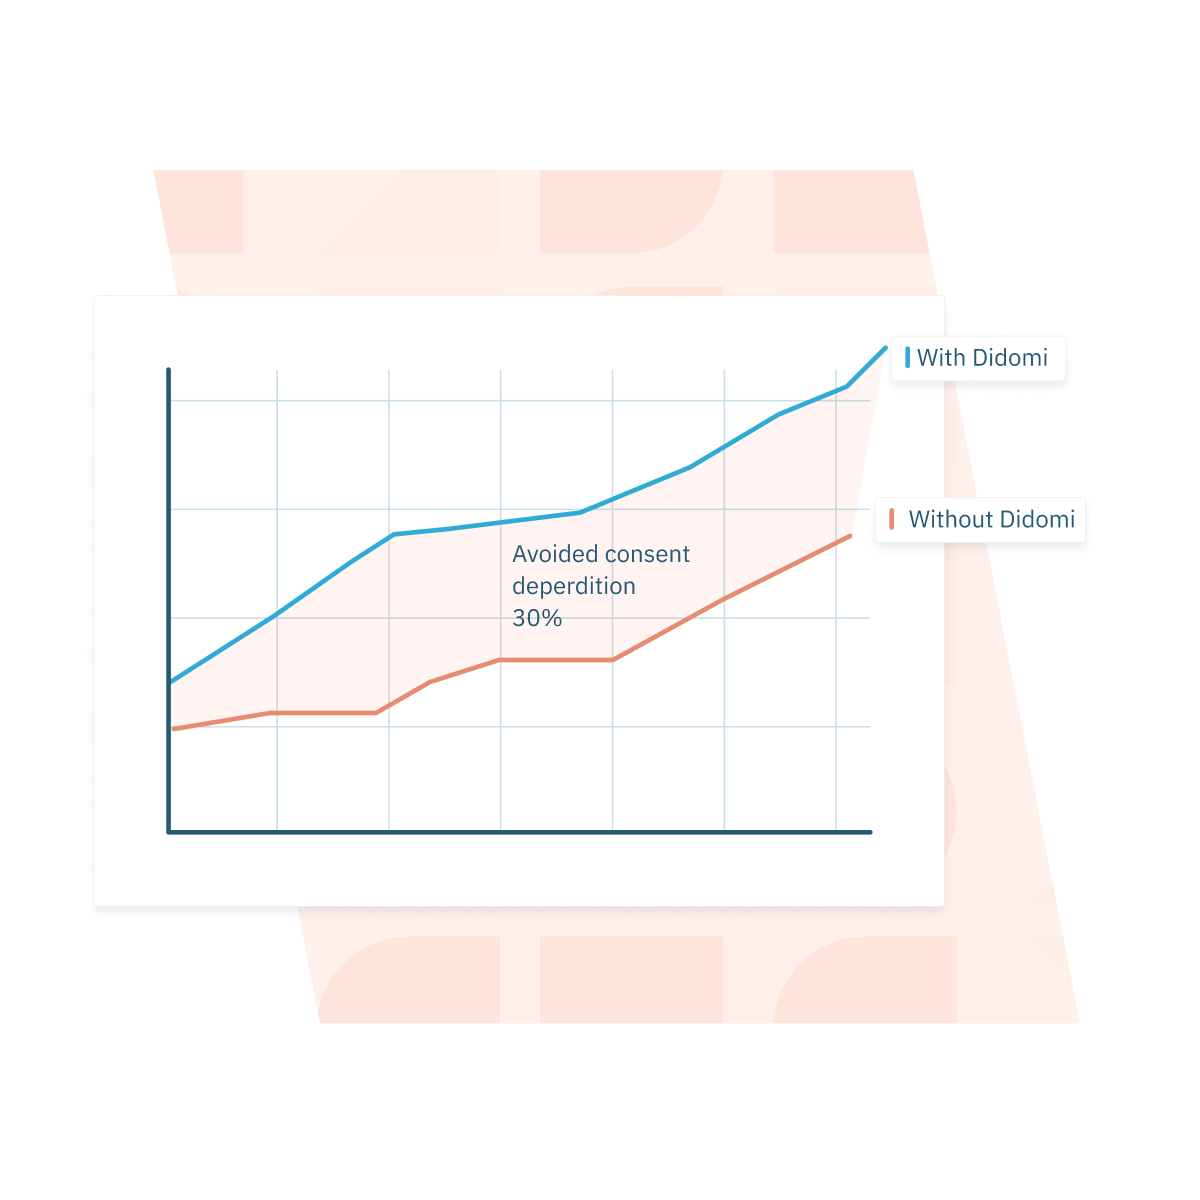 Illustration of increased average revenue per user thanks to consented data monetization